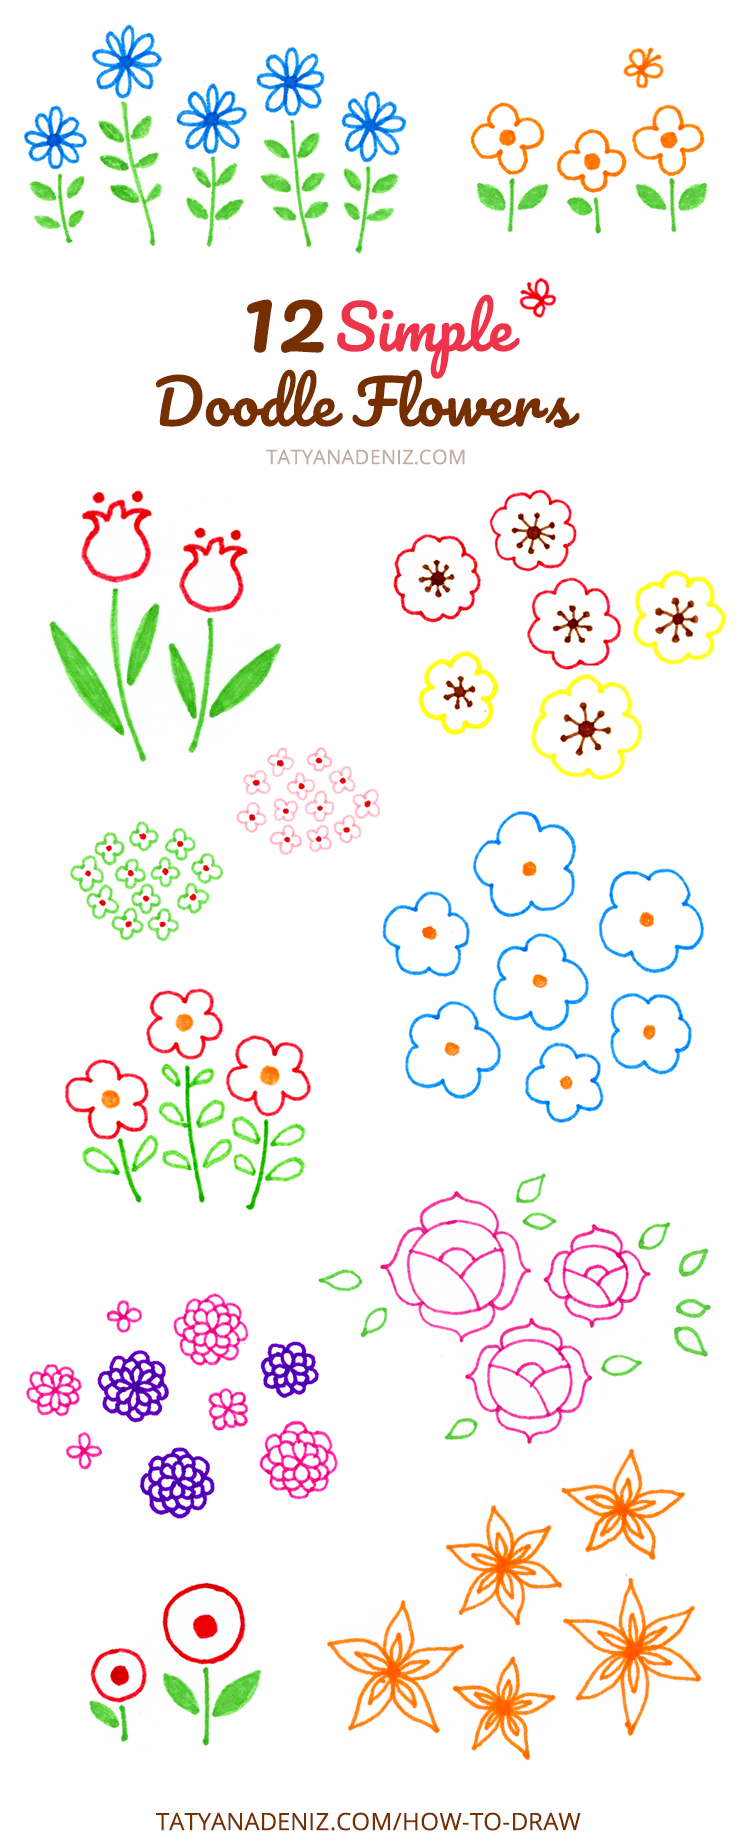 How to draw 12 simple doodle flowers with felt tip pens